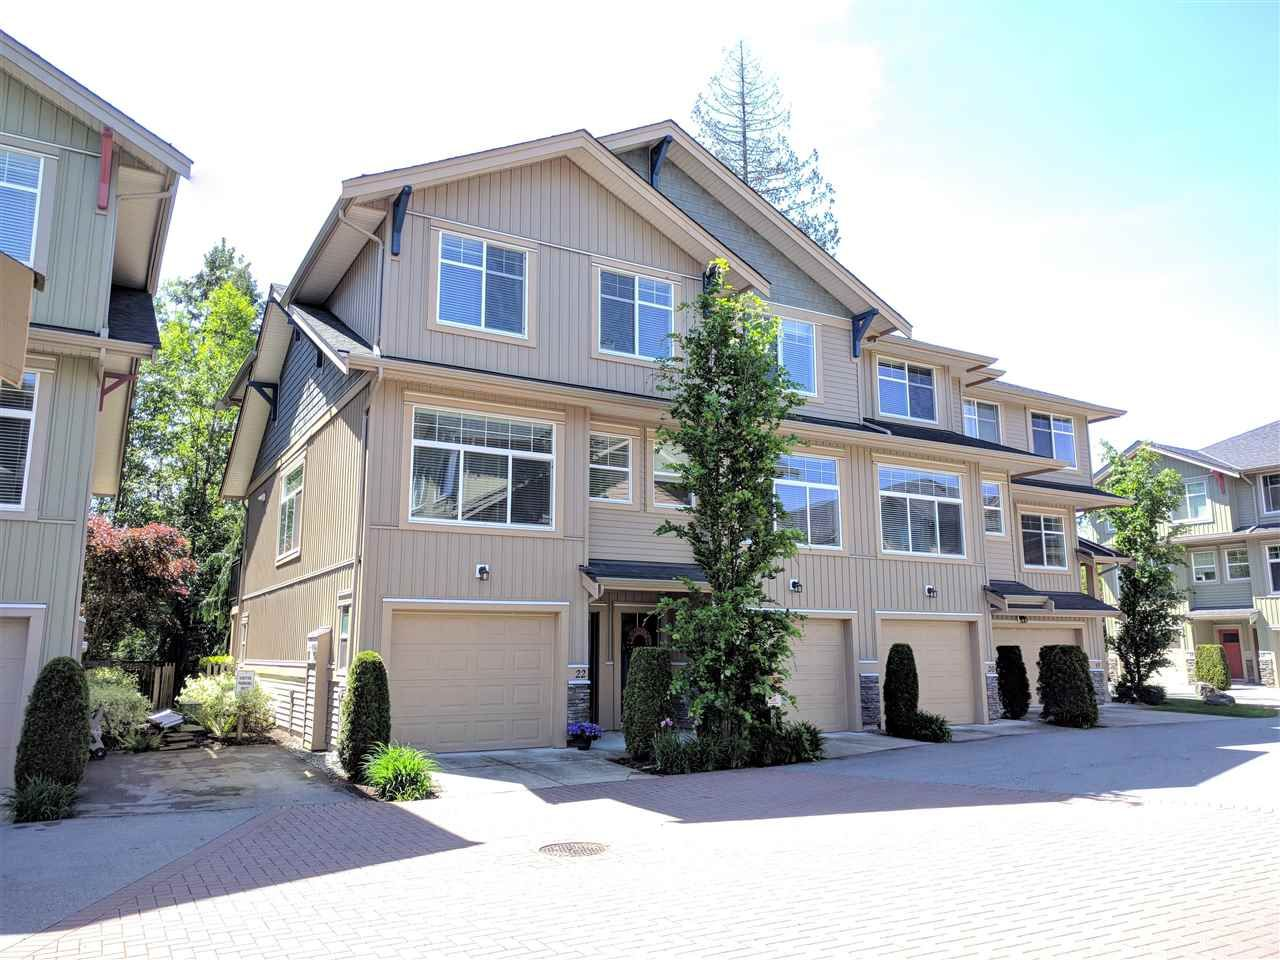 """Main Photo: 22 20966 77A Avenue in Langley: Willoughby Heights Townhouse for sale in """"NATURE'S WALK"""" : MLS®# R2370750"""